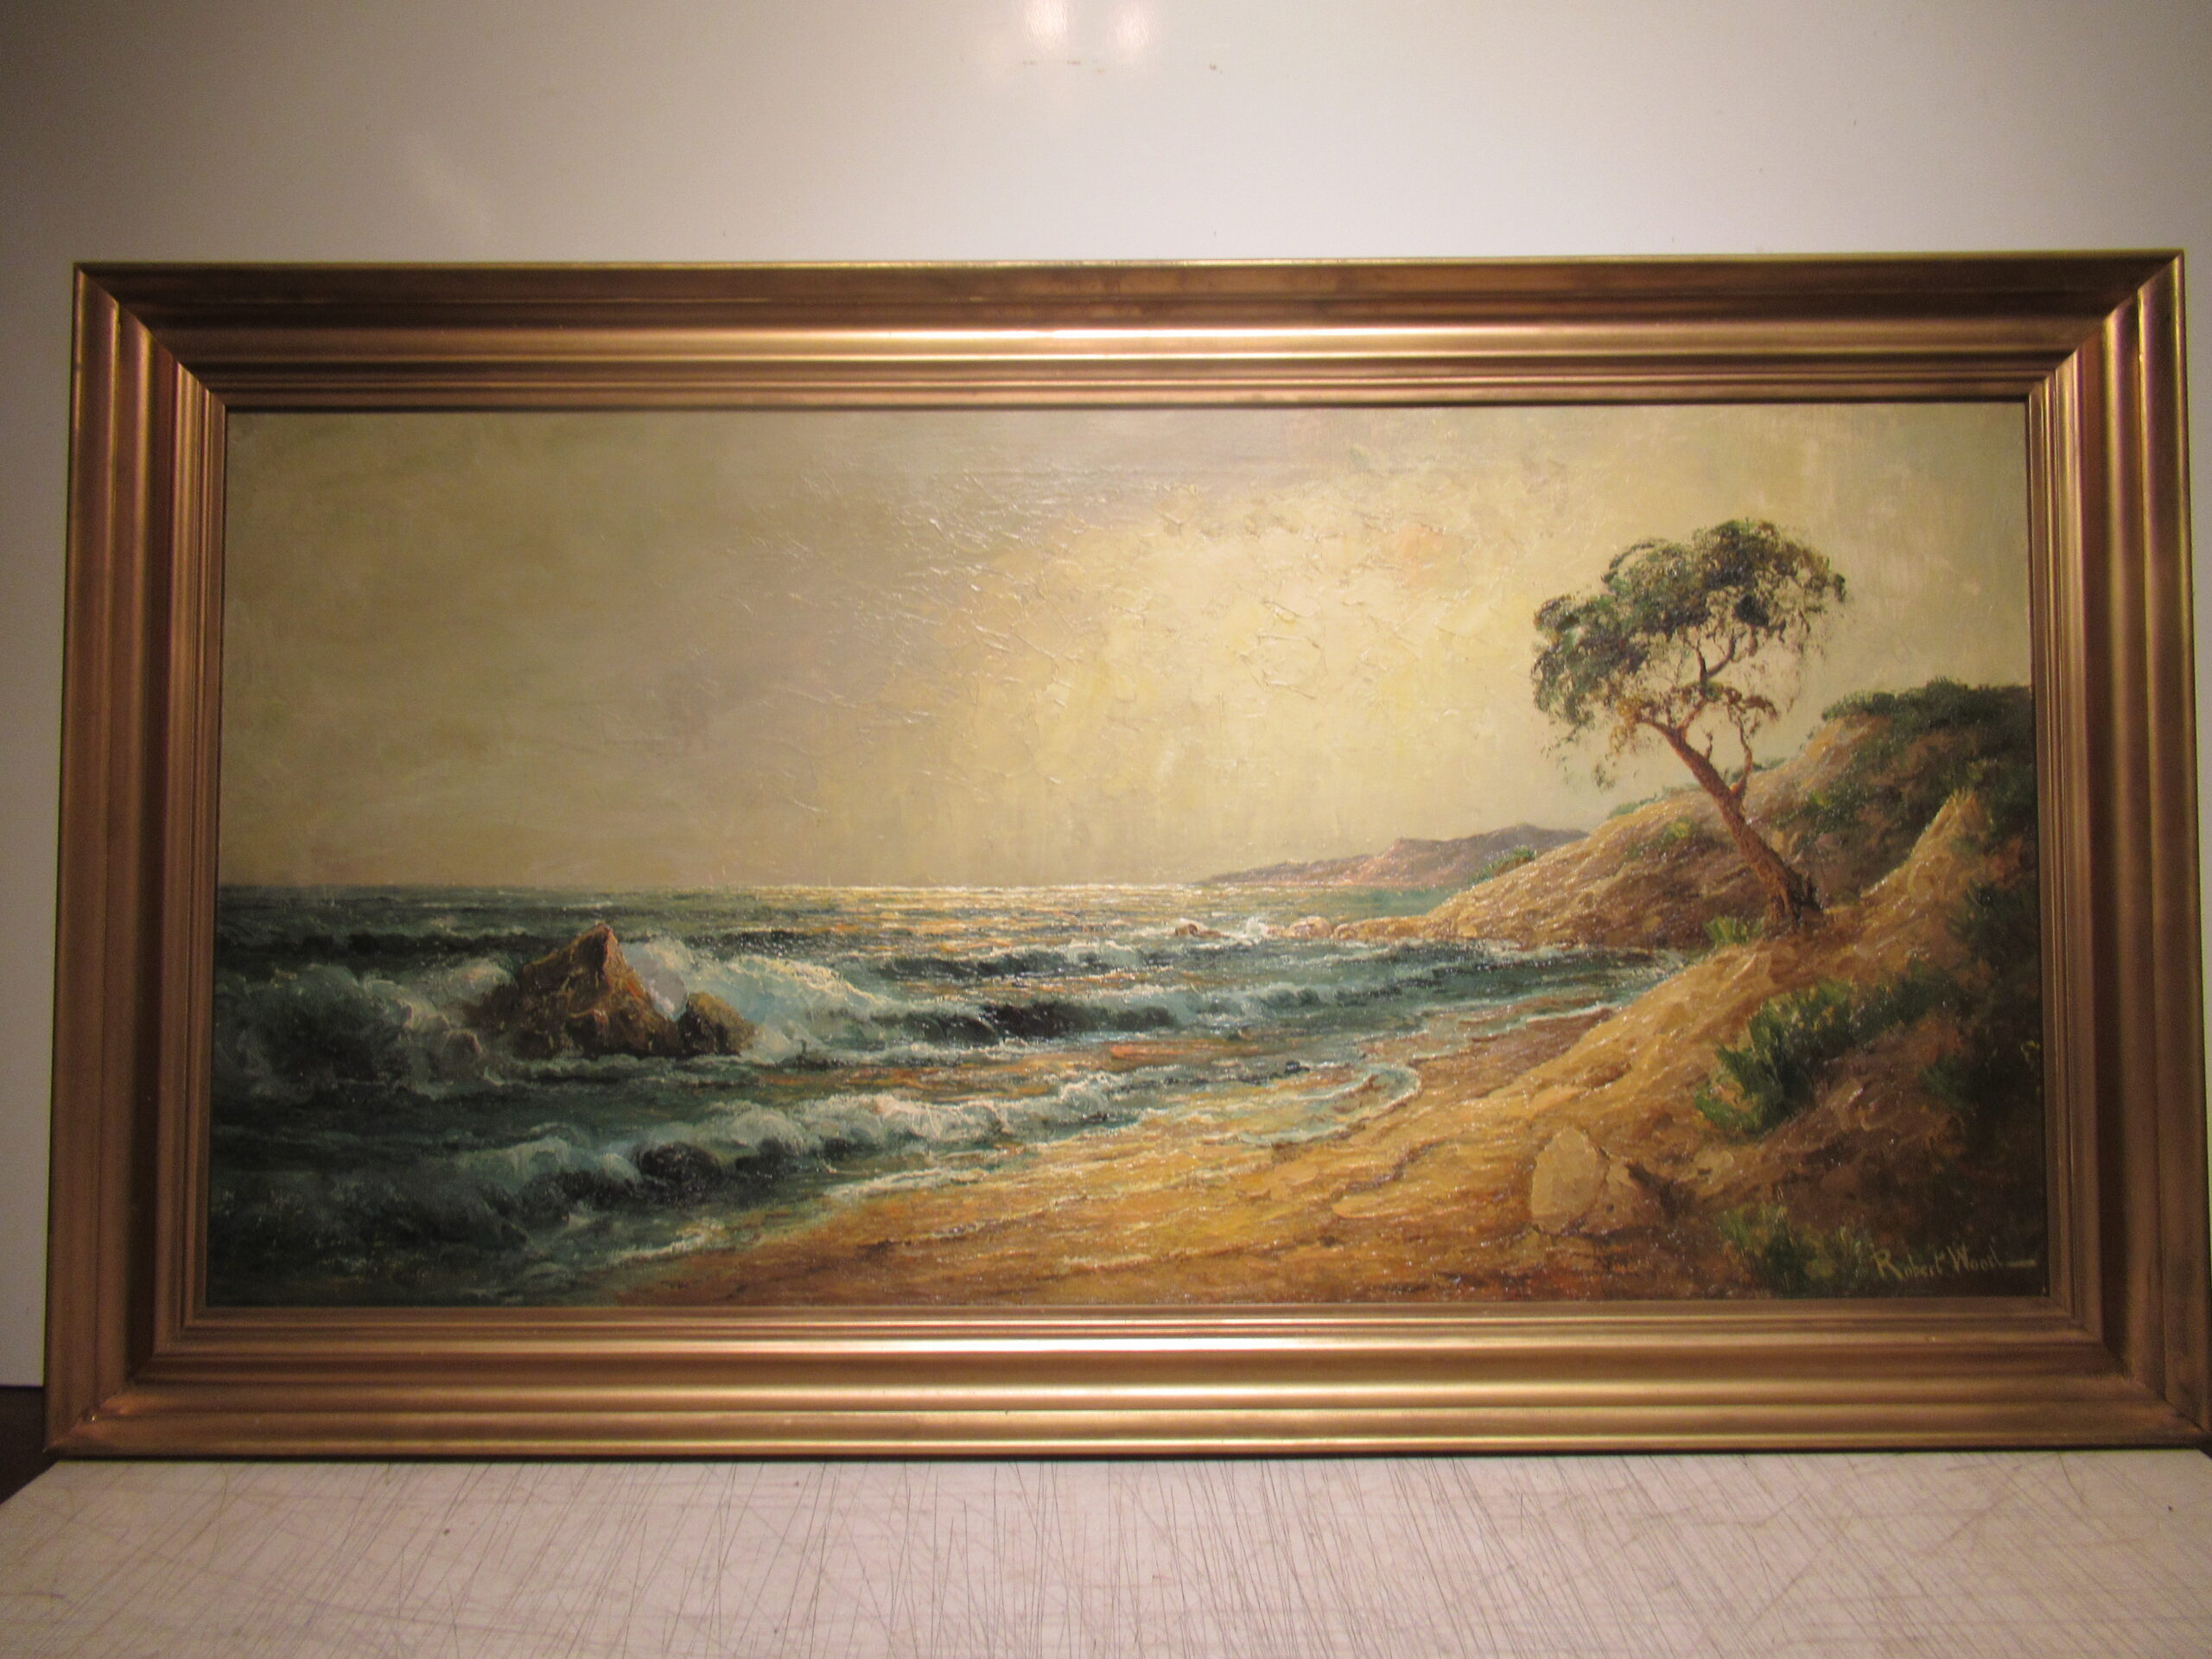 20×40 Robert Wood 1940 Monterey Coast Oil Painting